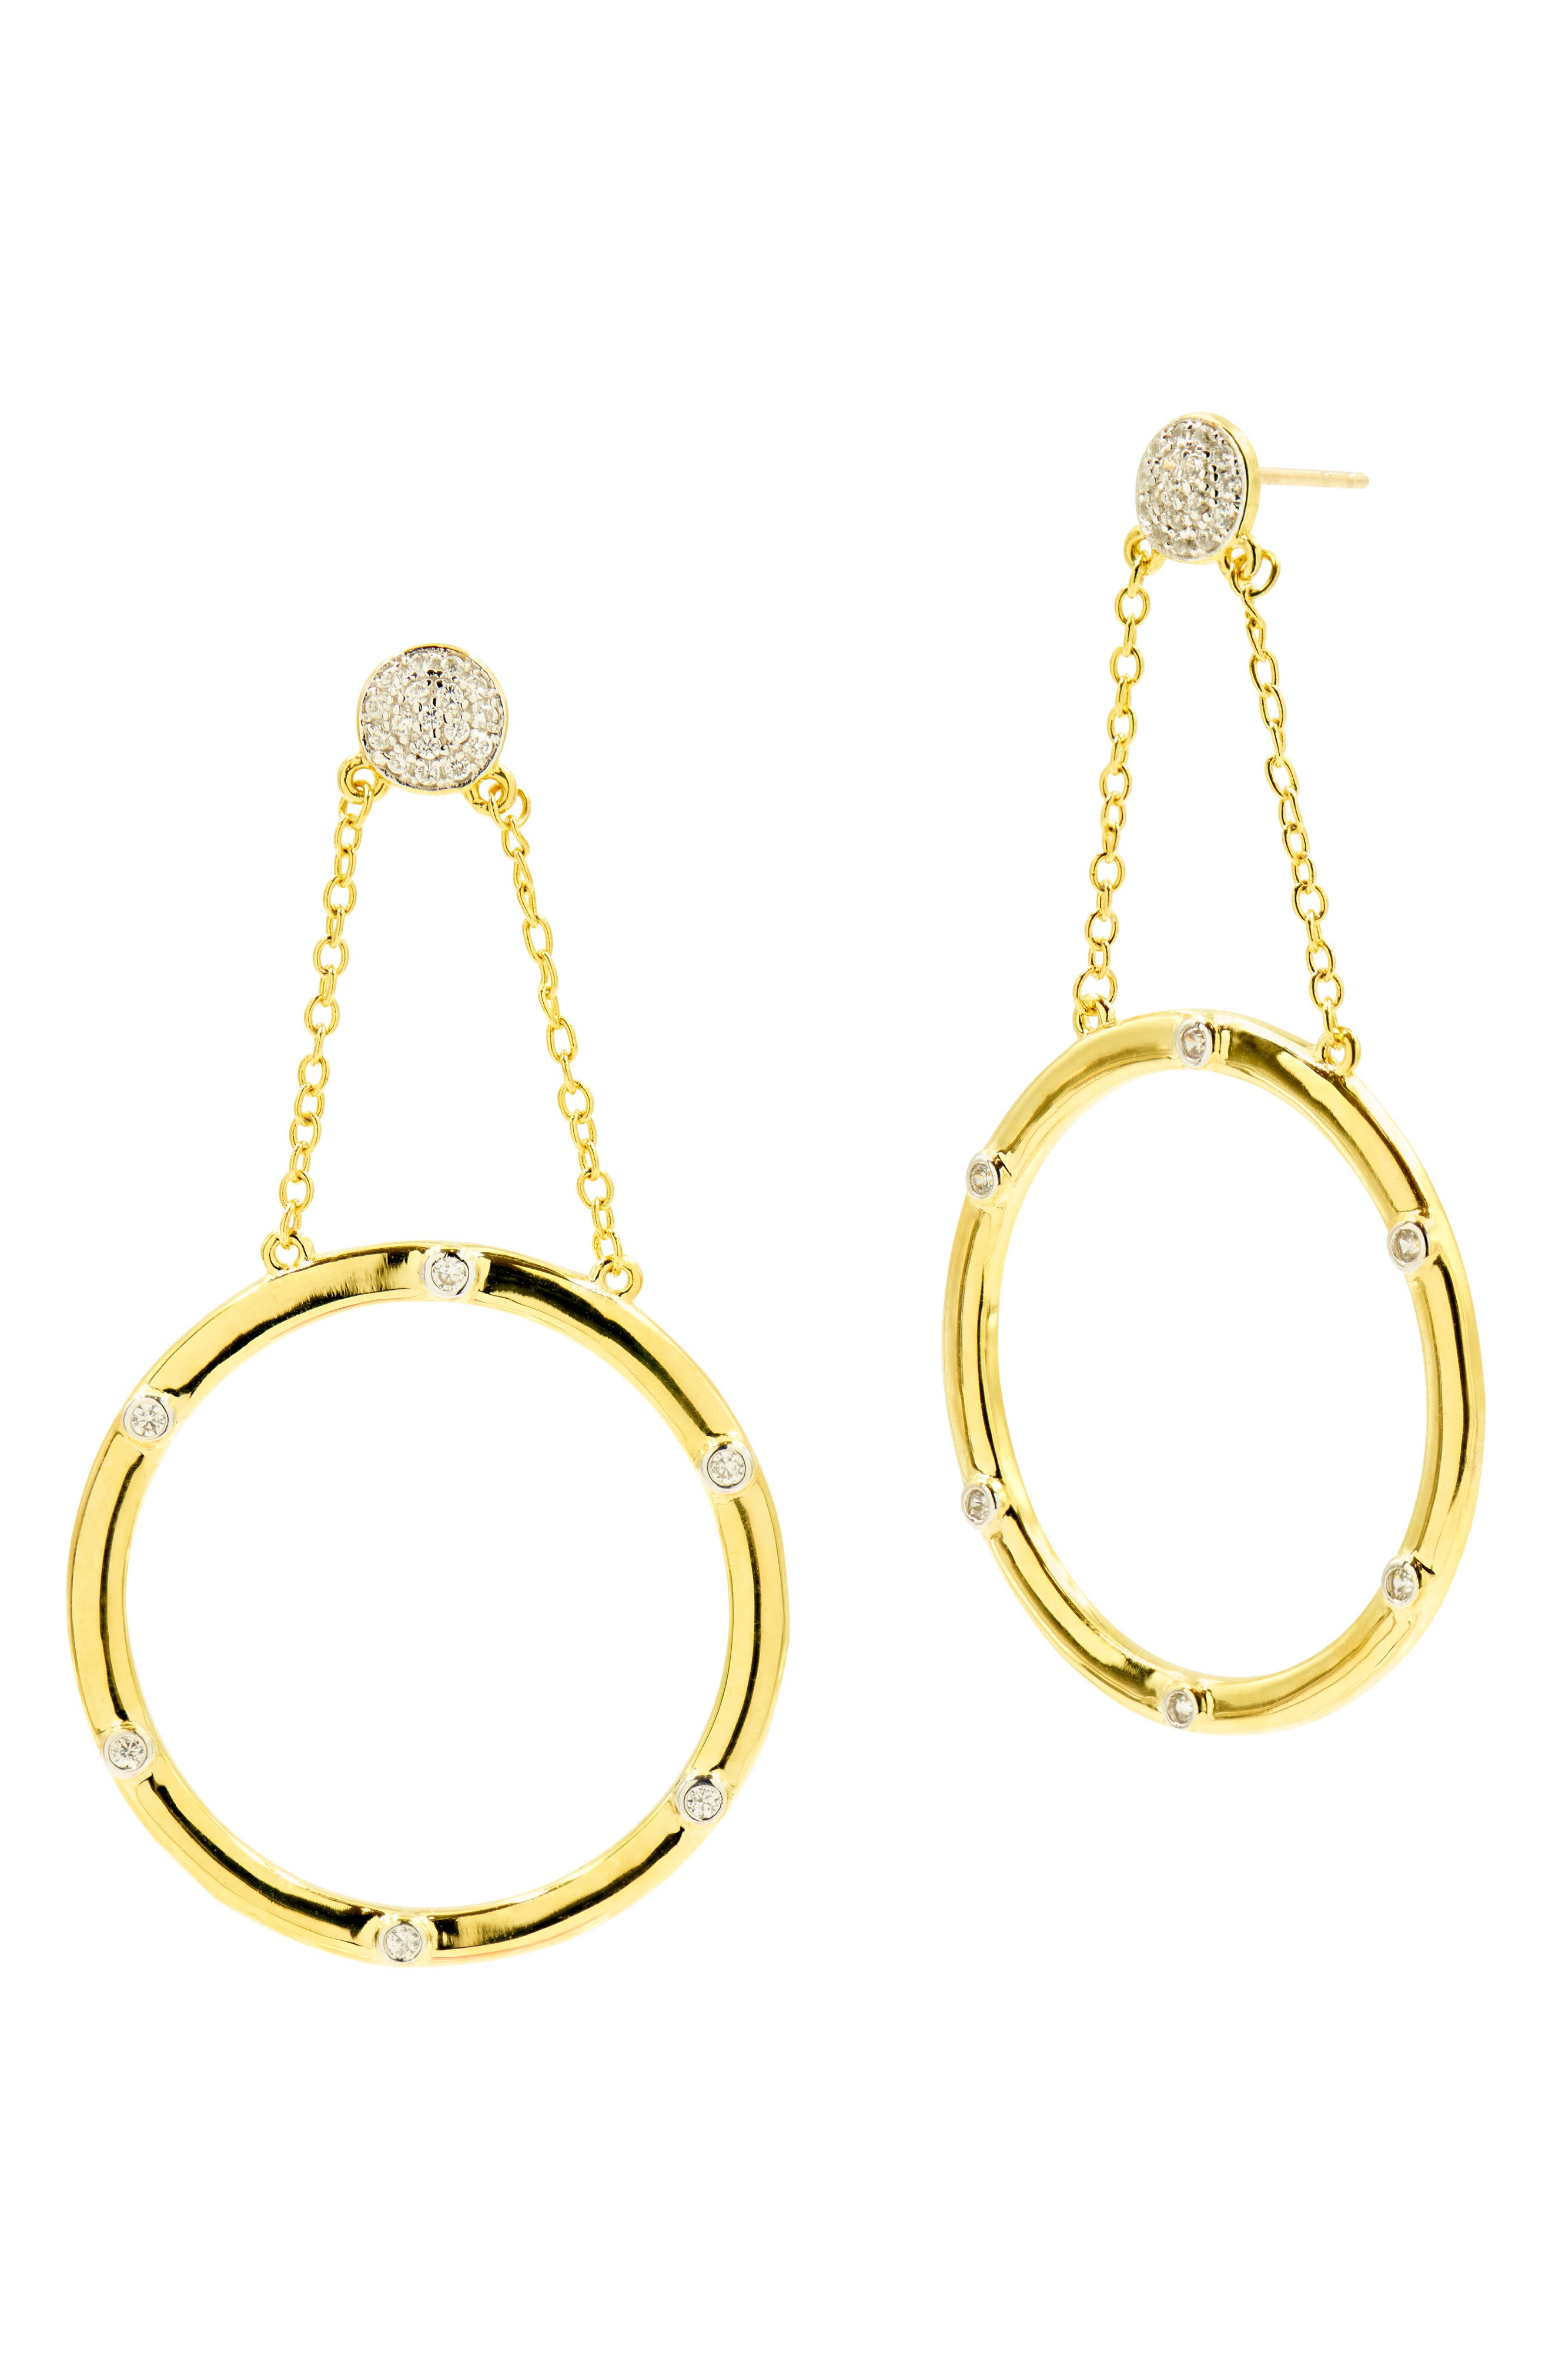 Radiance Drop Earrings,                             Main thumbnail 1, color,                             GOLD